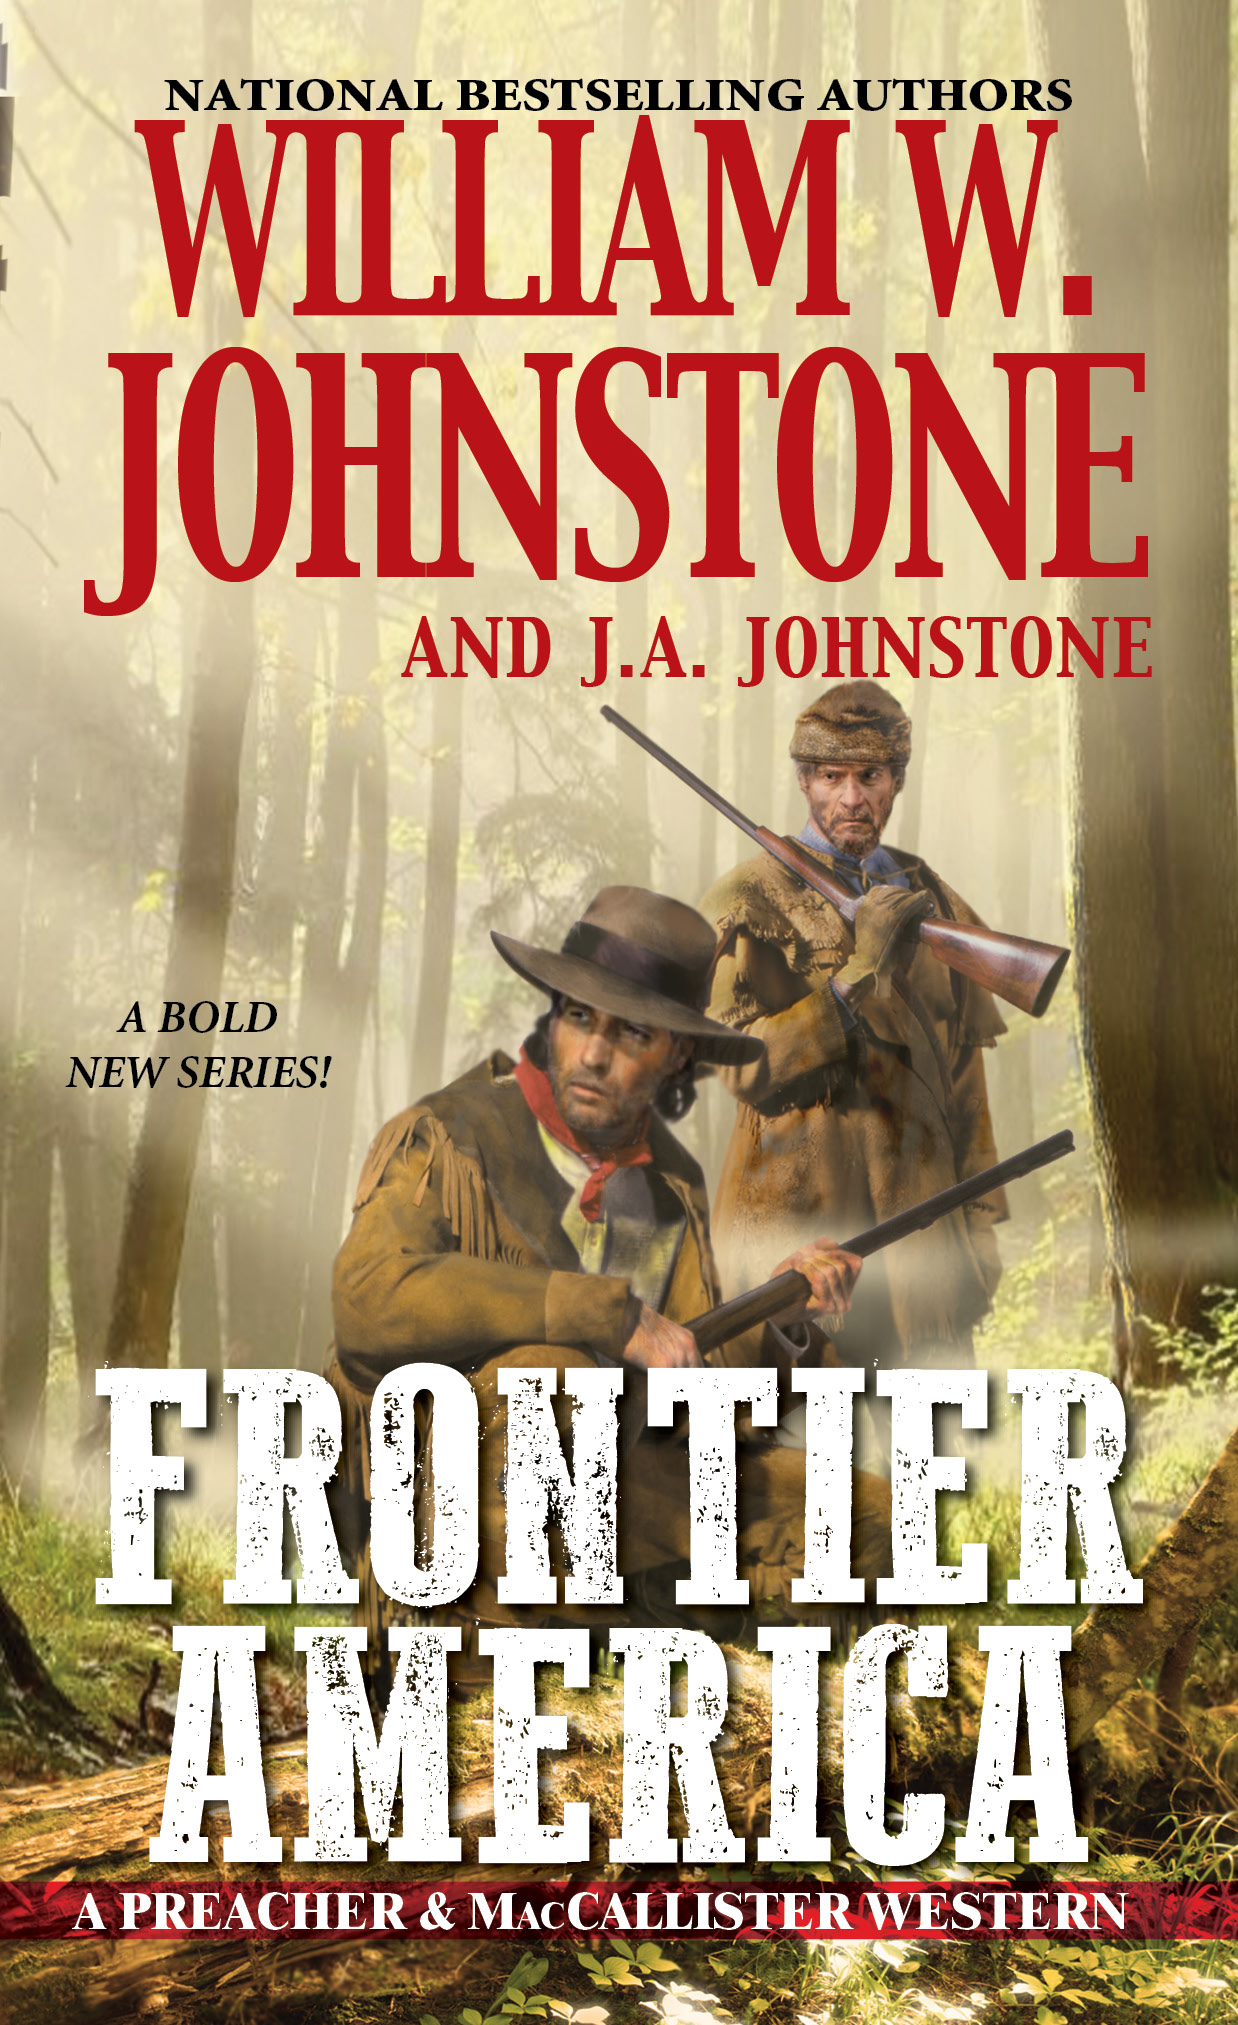 FRONTIER AMERICA by William W. Johnstone & J.A. Johnstone